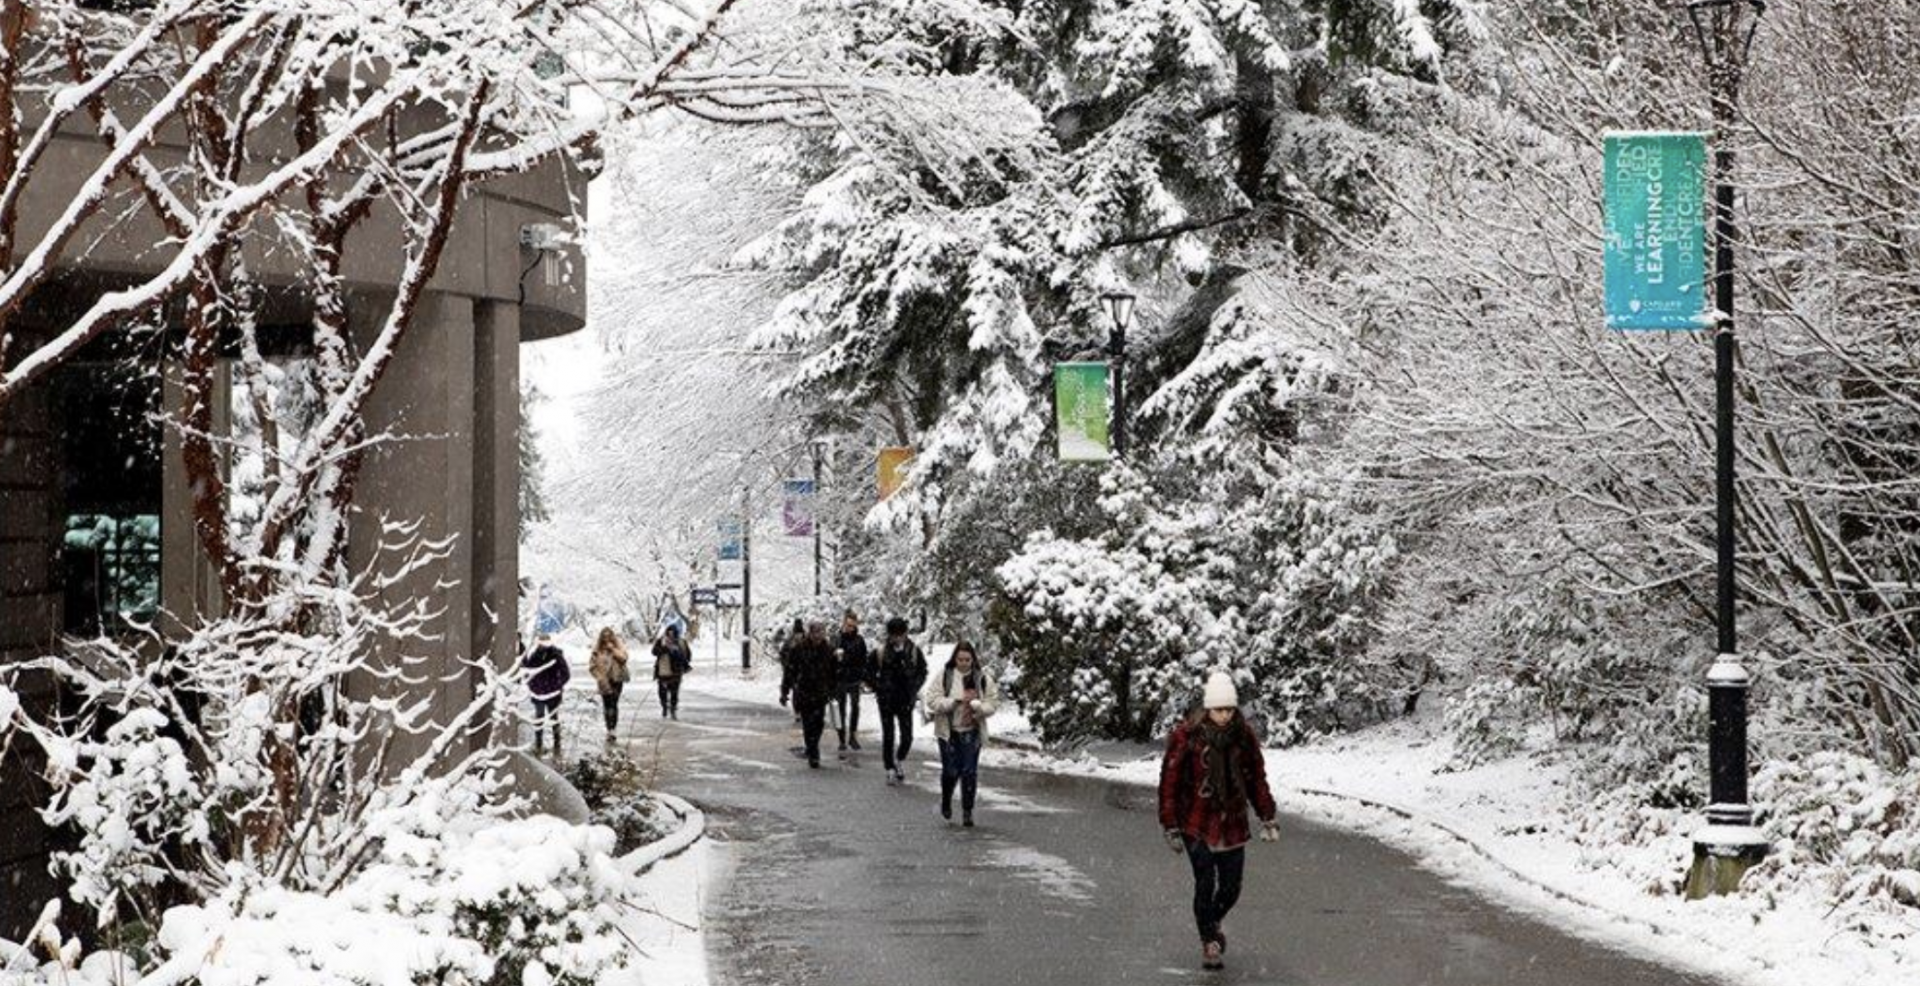 Most public schools, colleges, and universities open in Metro Vancouver today